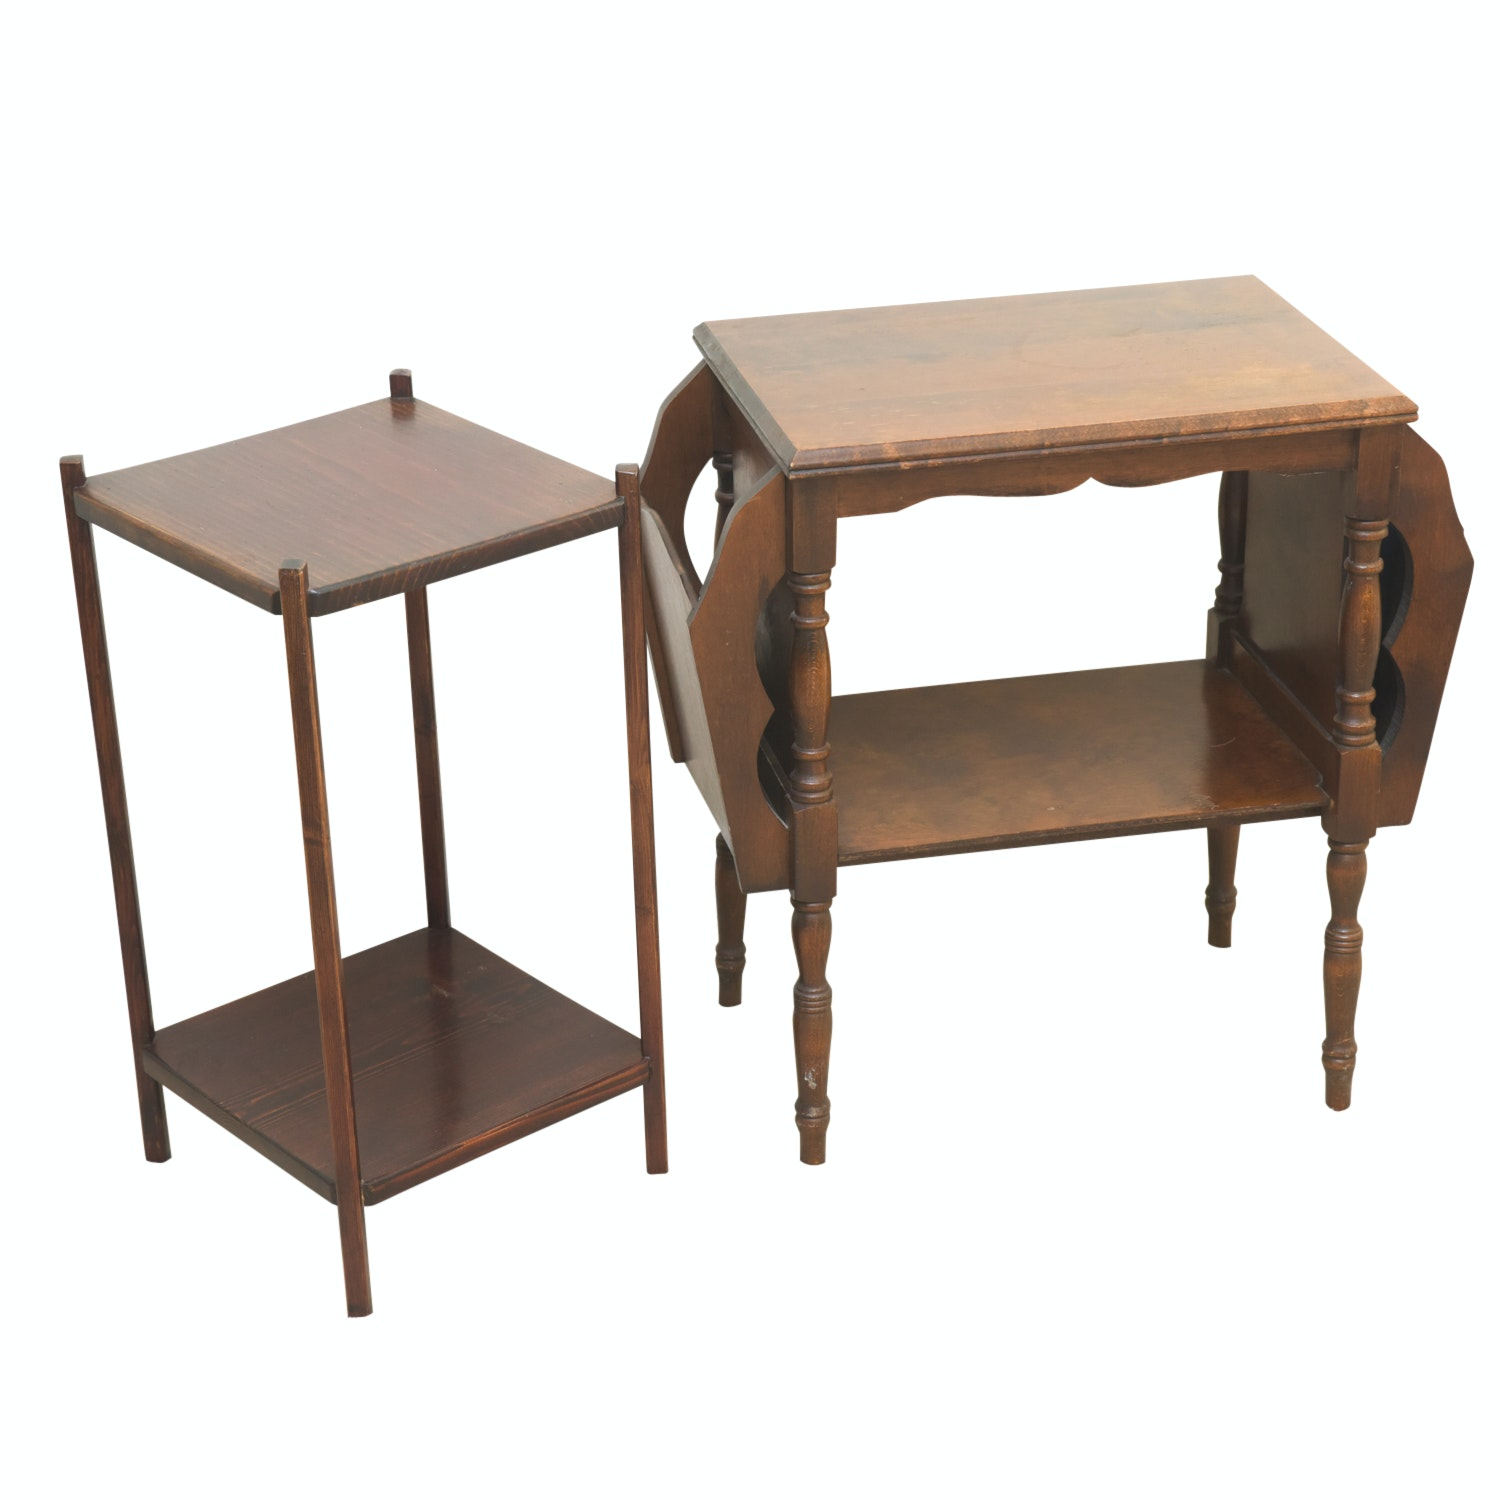 Vintage Two Tier Wooden Side Tables